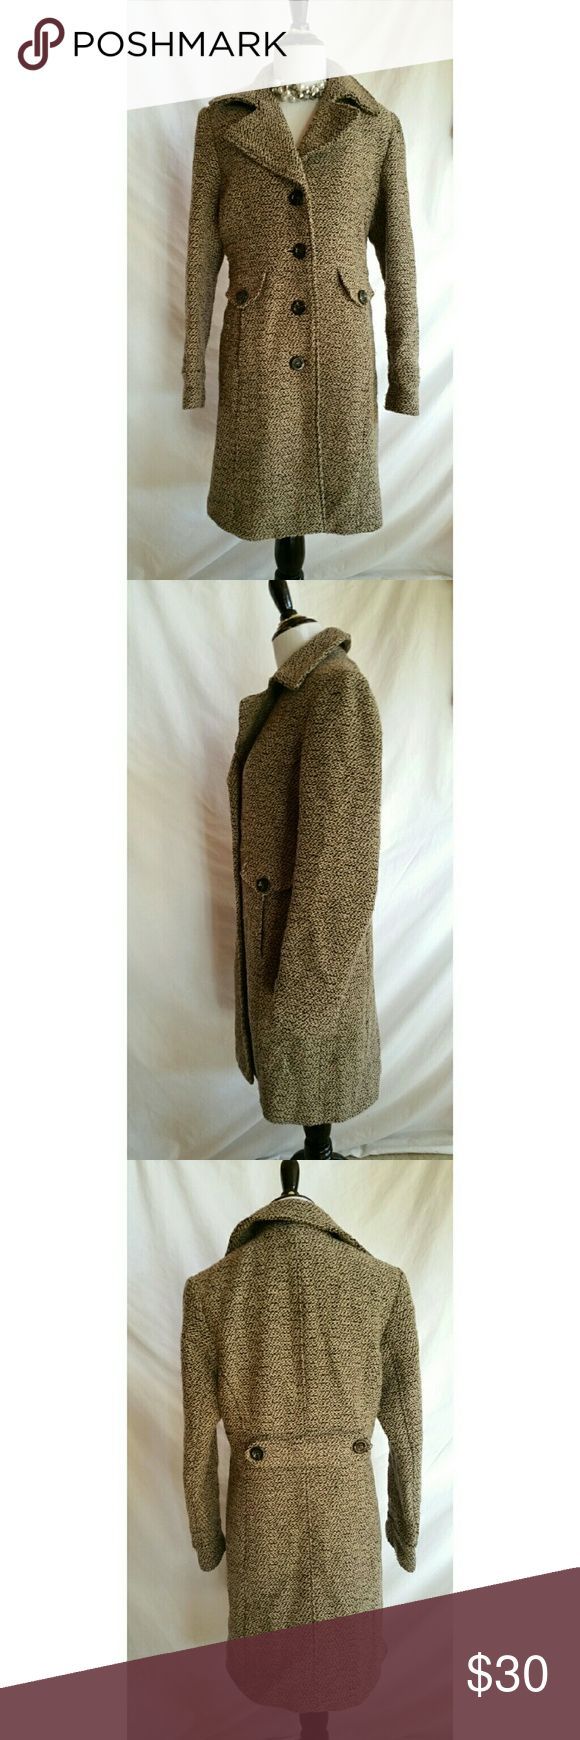 Giacca Size M Wool Blend Coat Dress up your outfit with this classy coat!  Wool, nylon blend.   Polyester lining. Gallery Jackets & Coats Pea Coats